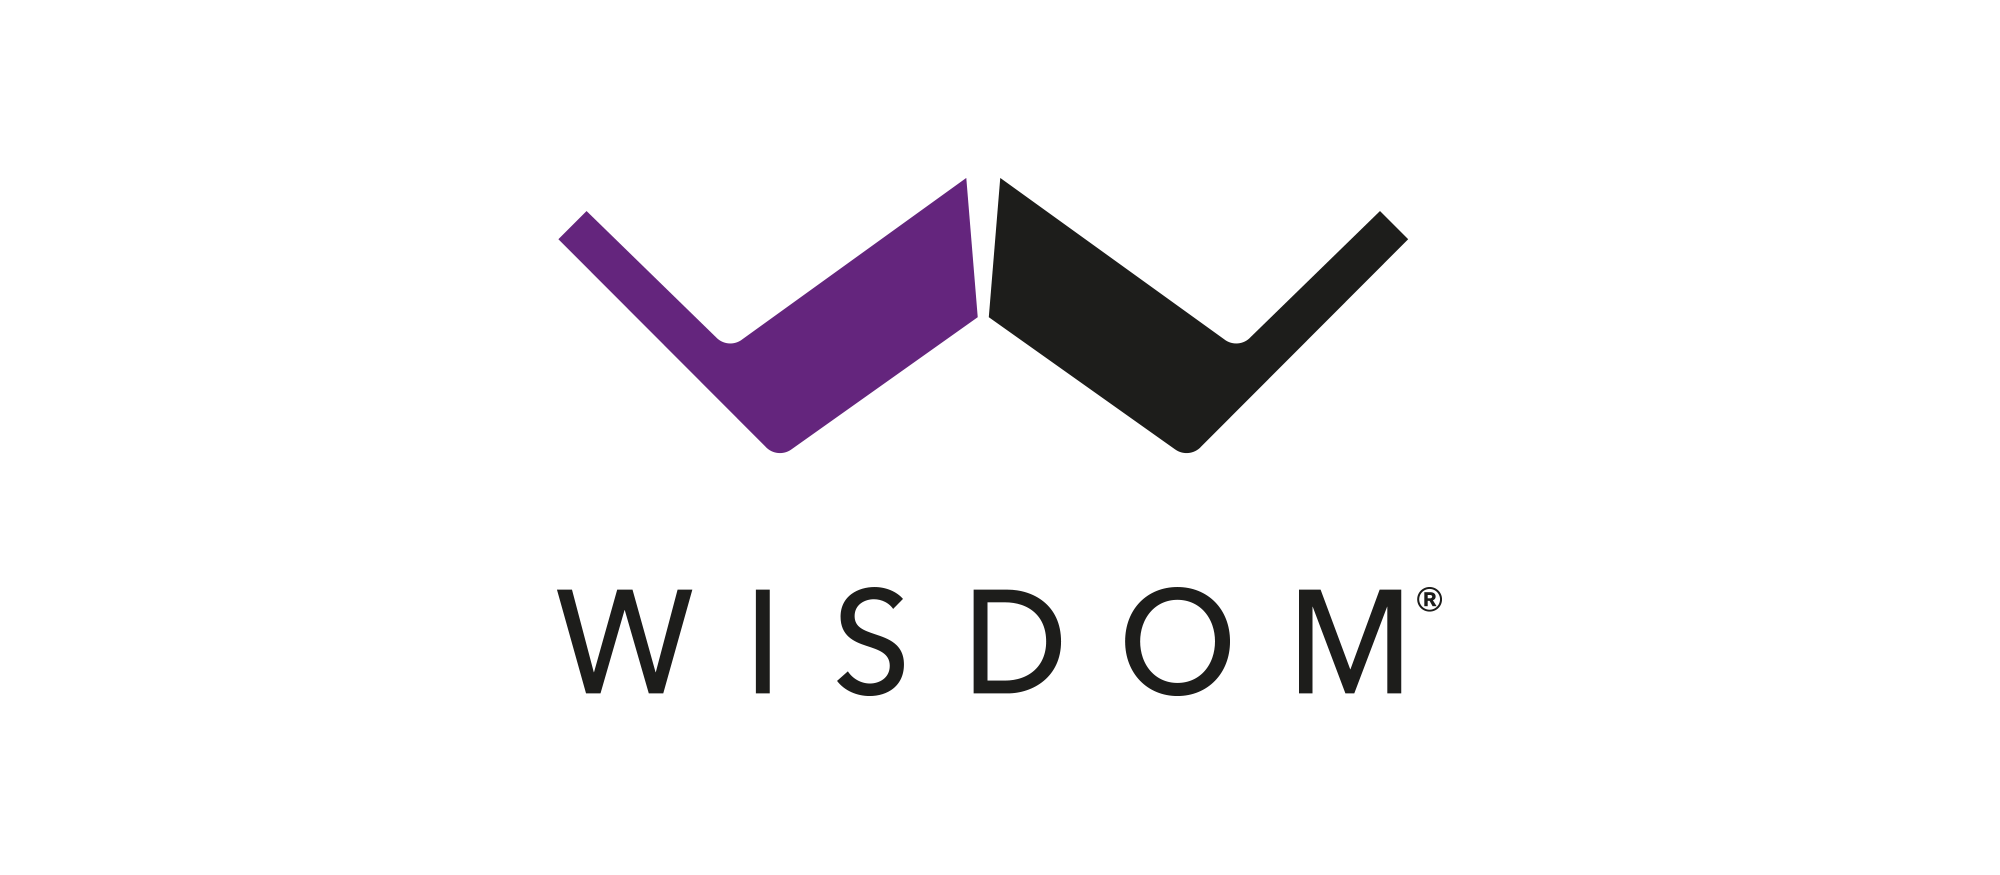 WISDOM AUDIO - Wisdom Audio manufactures the world's finest architecturally-friendly high-end loudspeakers.